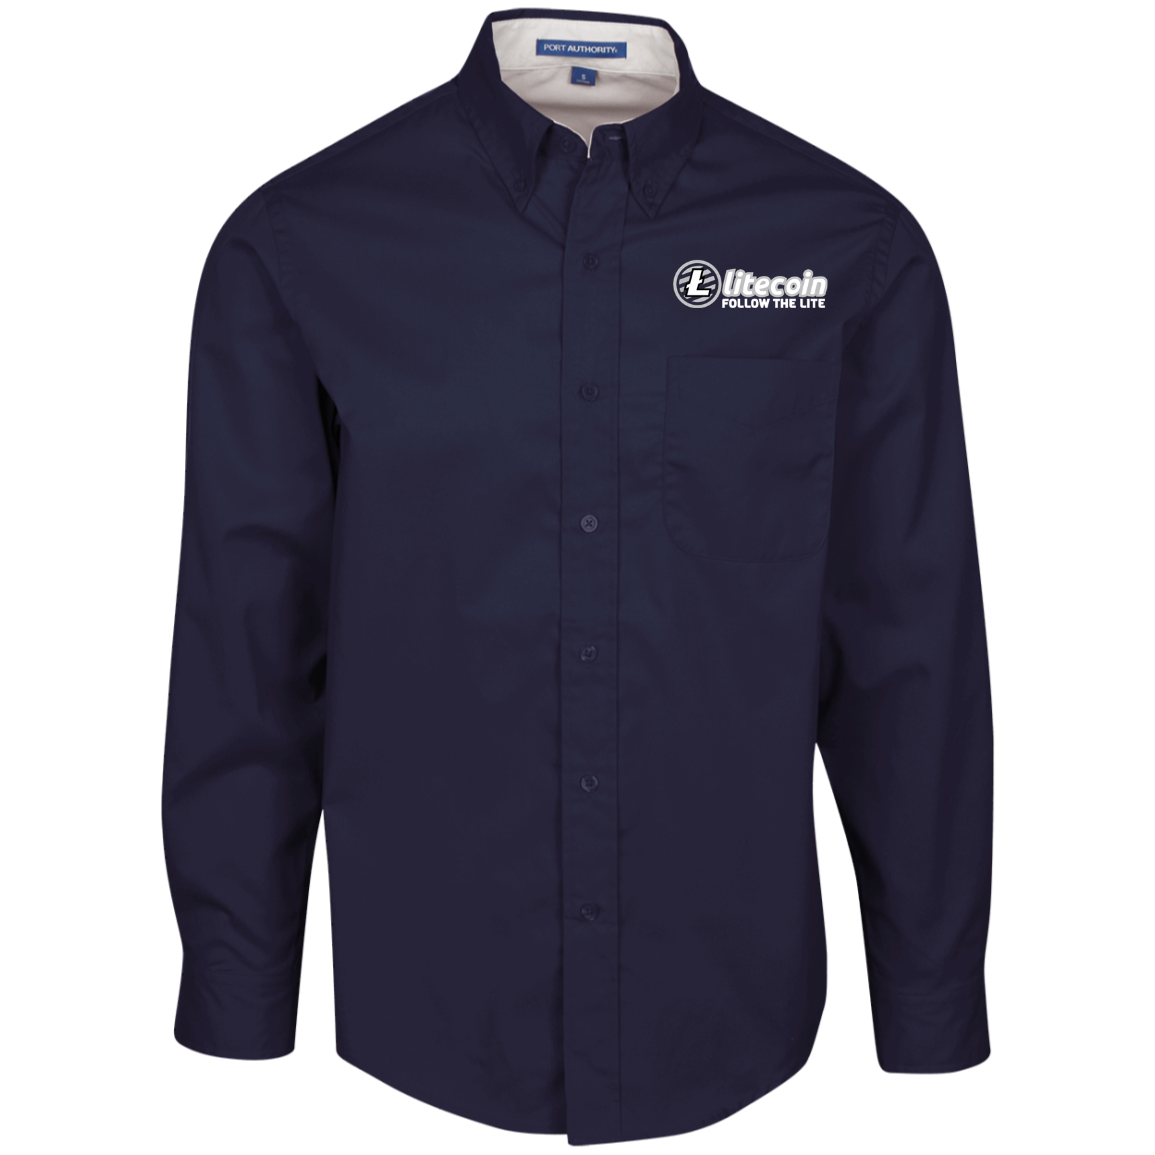 Litecoin Follow The Lite – Embroidered Long Sleeve Shirt by Port Authority (Dark)